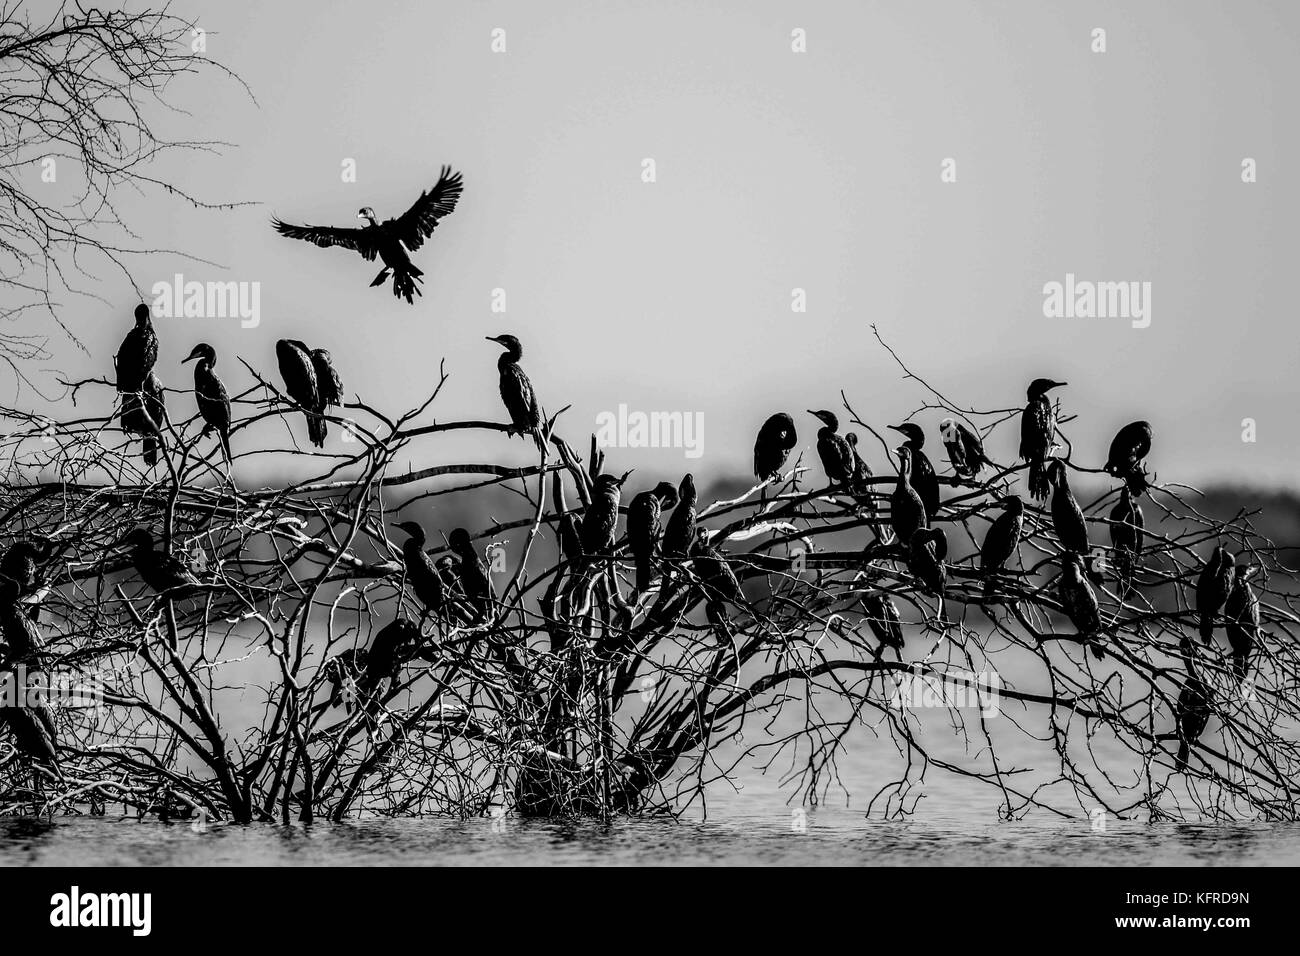 Hundreds of birds and ducks rest, fish for food and fly over the Abelardo L. Rodrigez dam in Hermosillo Sonora. - Stock Image